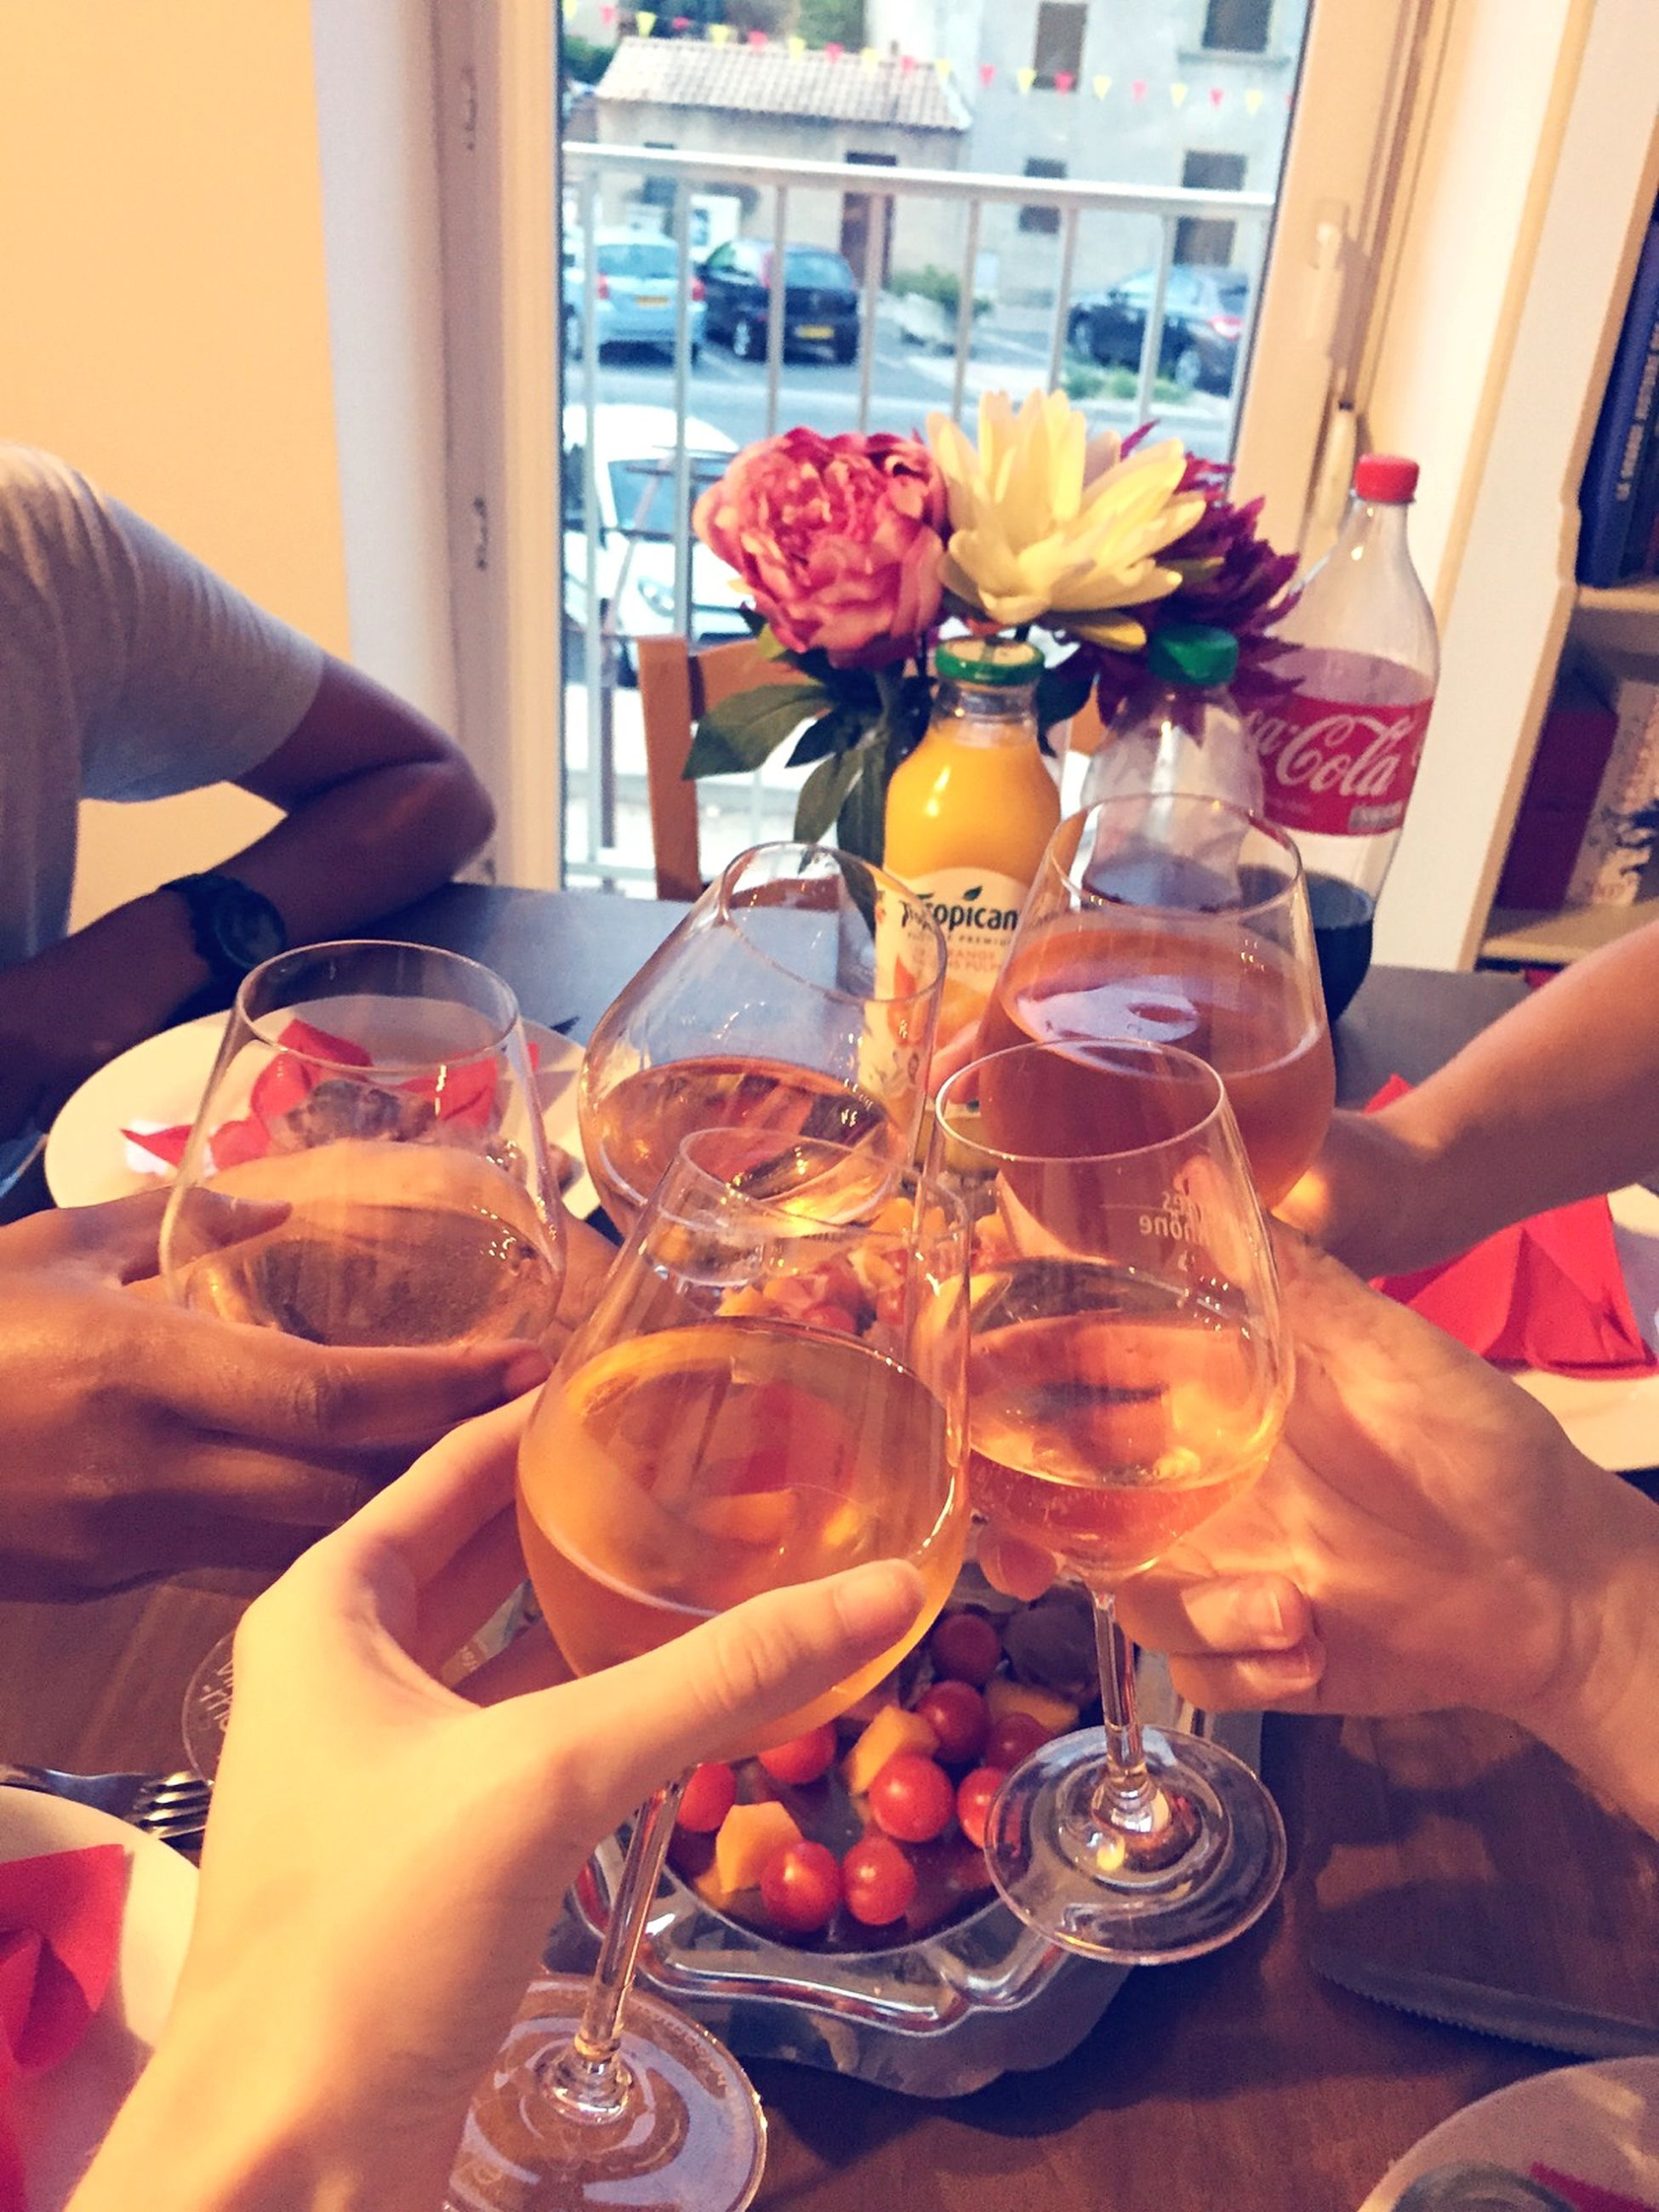 food and drink, person, indoors, lifestyles, holding, drink, freshness, table, leisure activity, refreshment, drinking glass, part of, restaurant, cropped, food